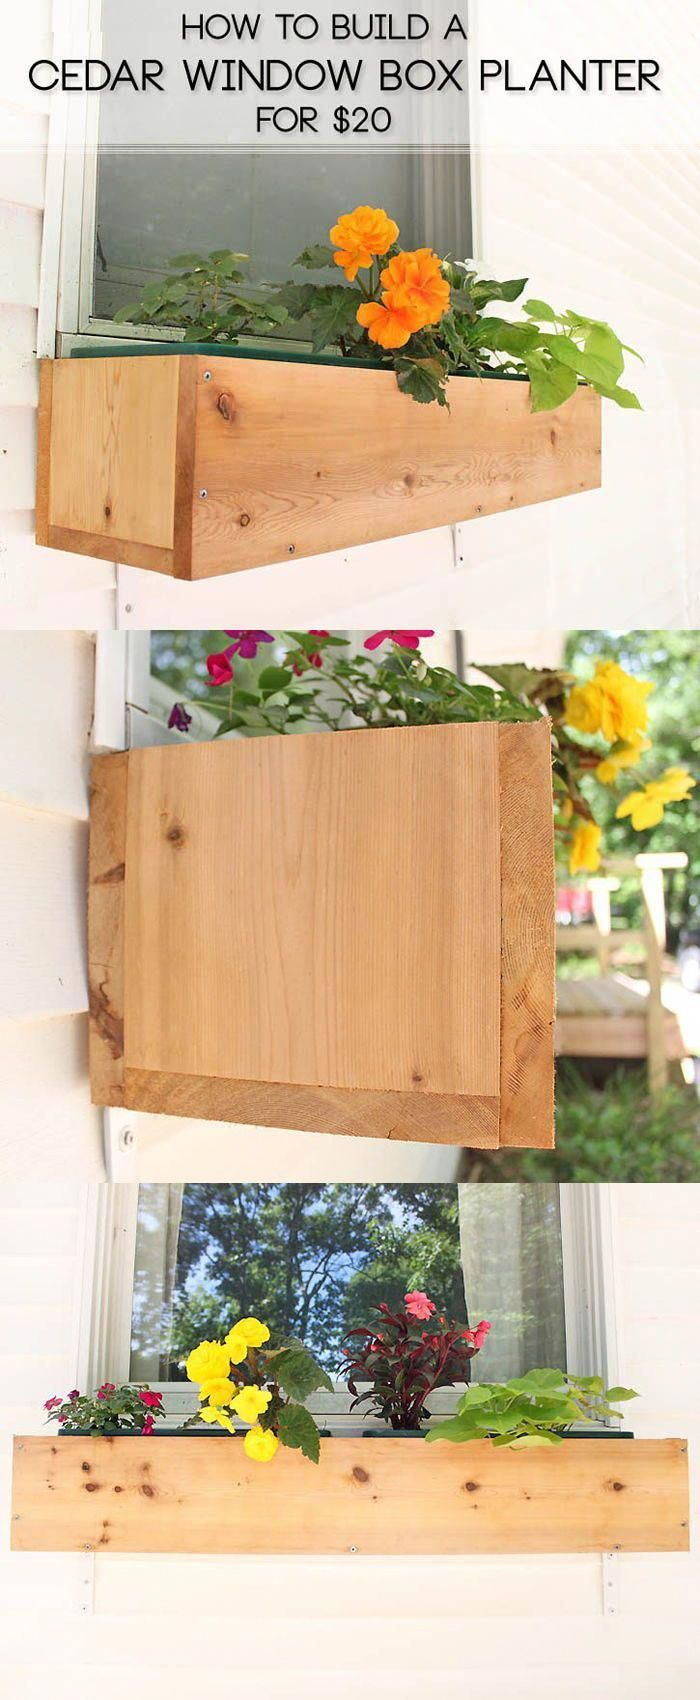 Learn how to build a cedar window box planter for …